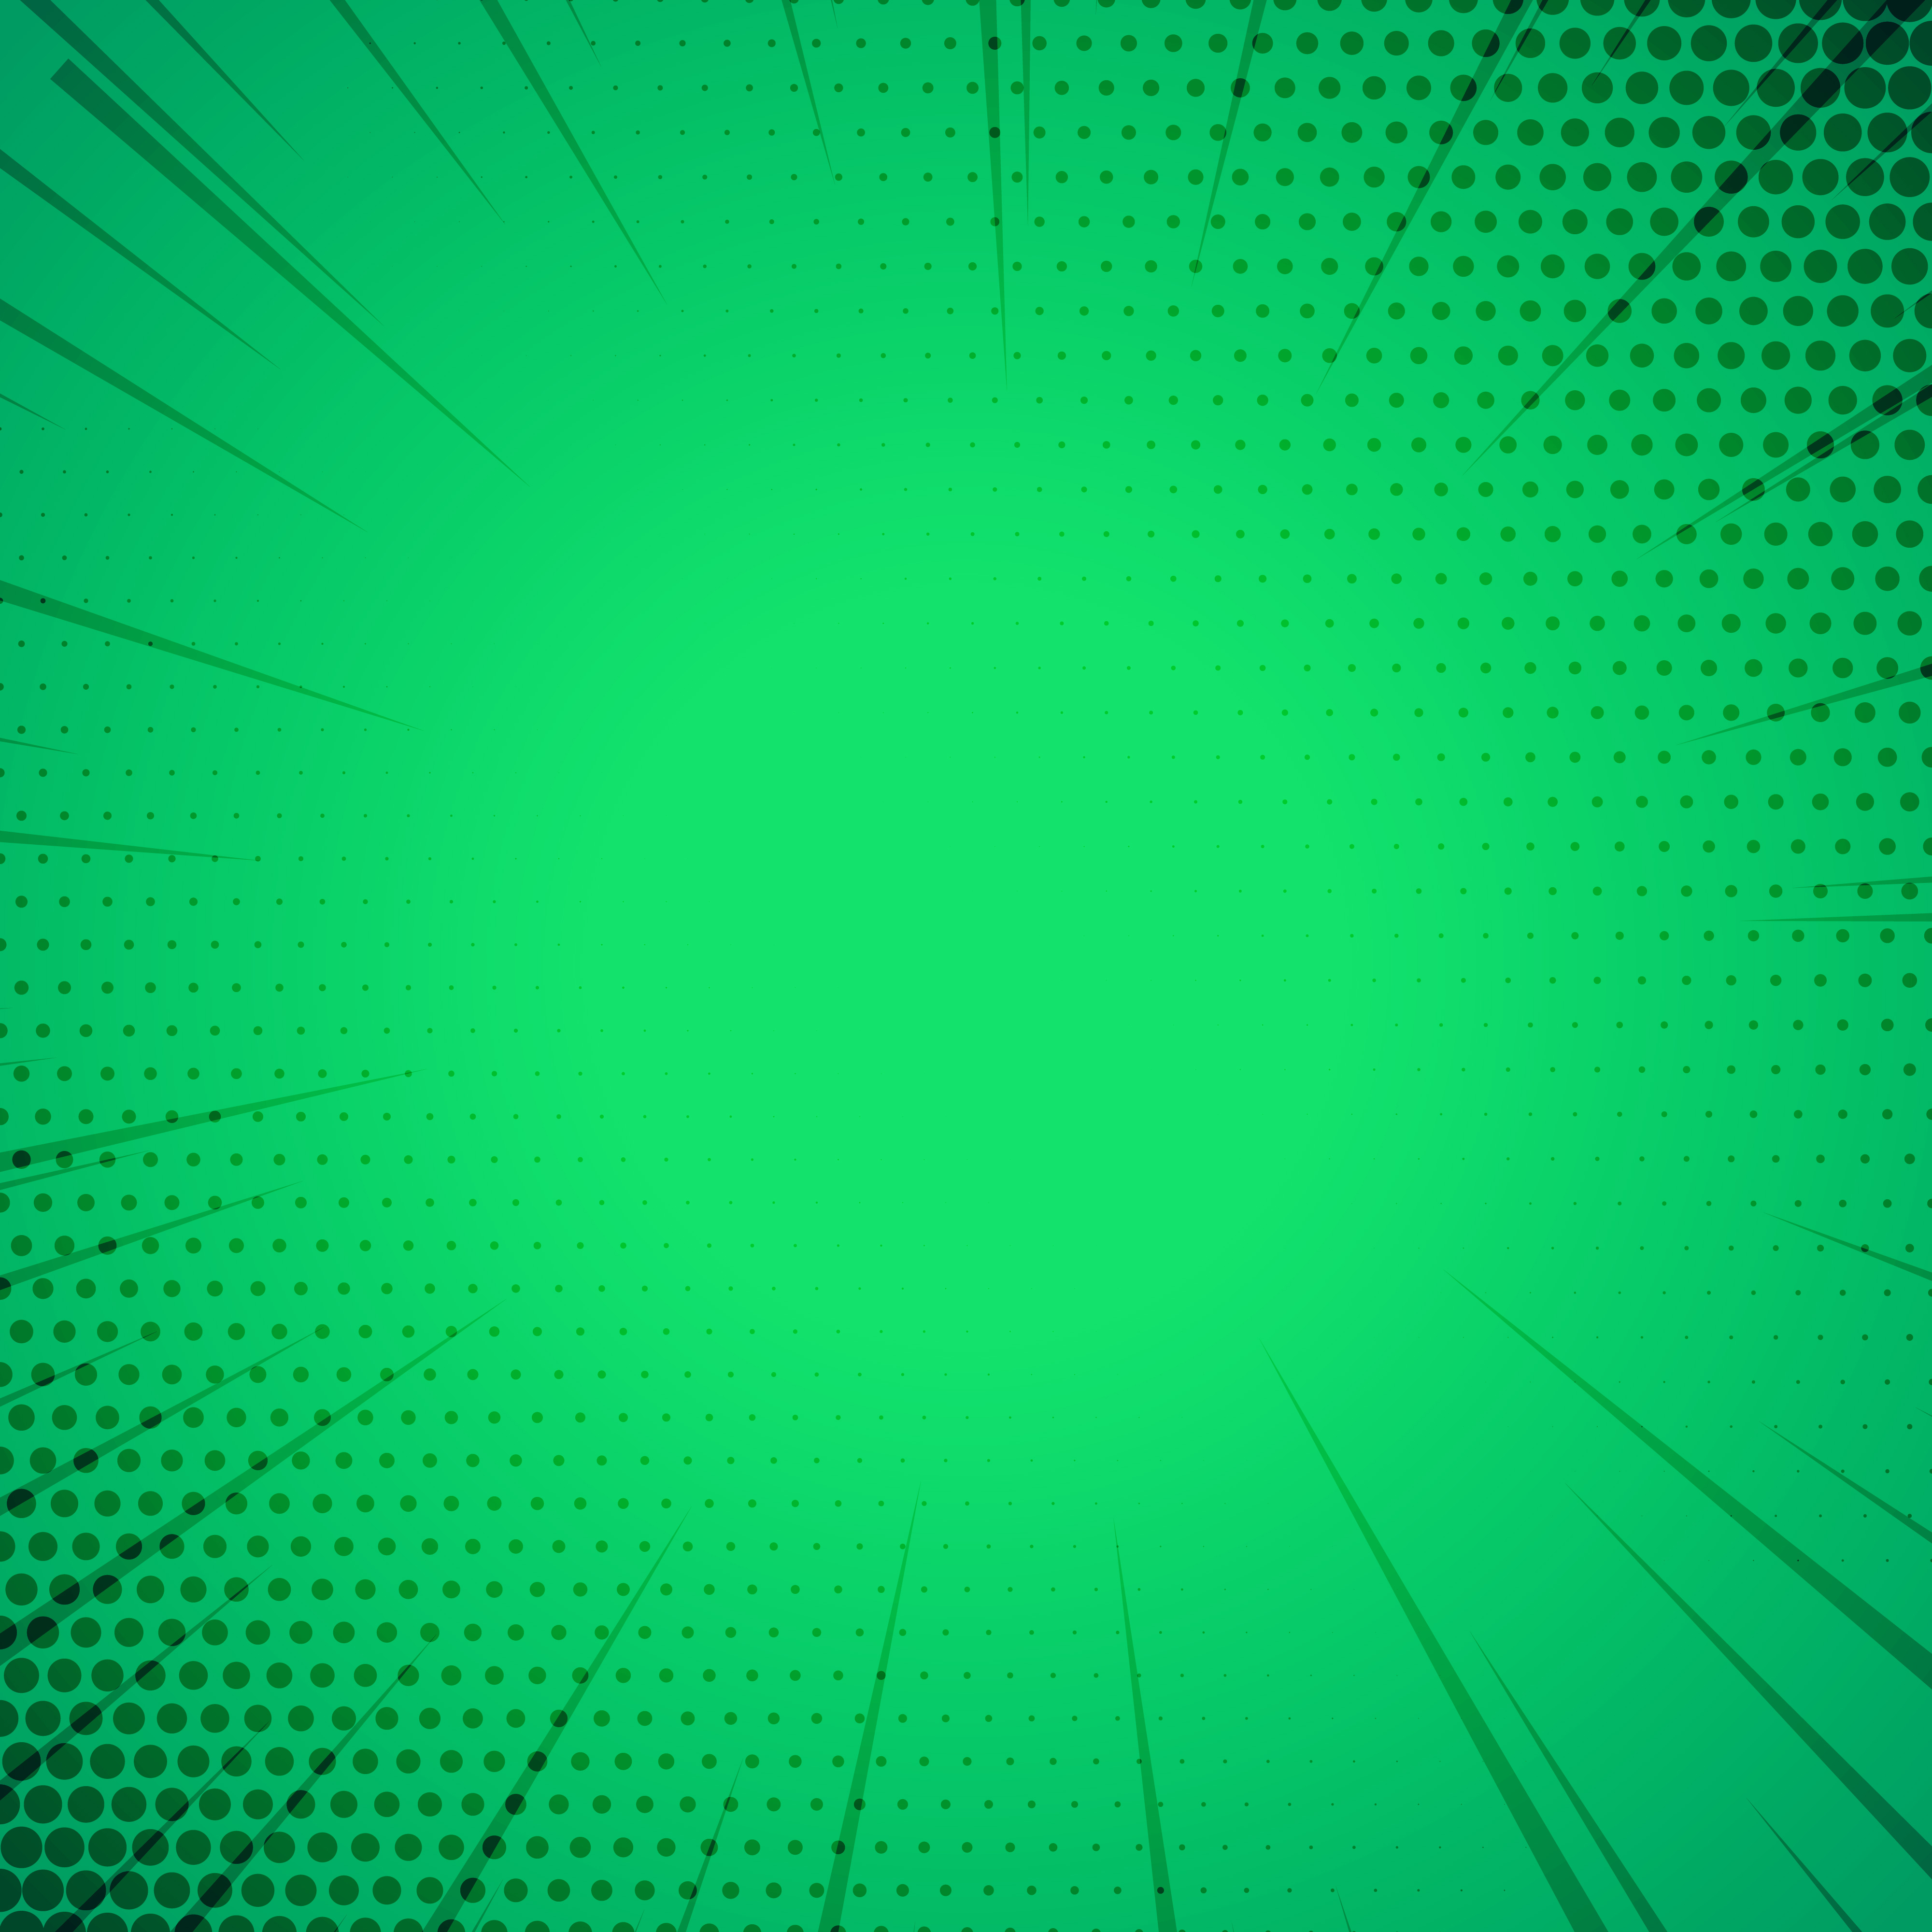 green comic book style template background download free #1034